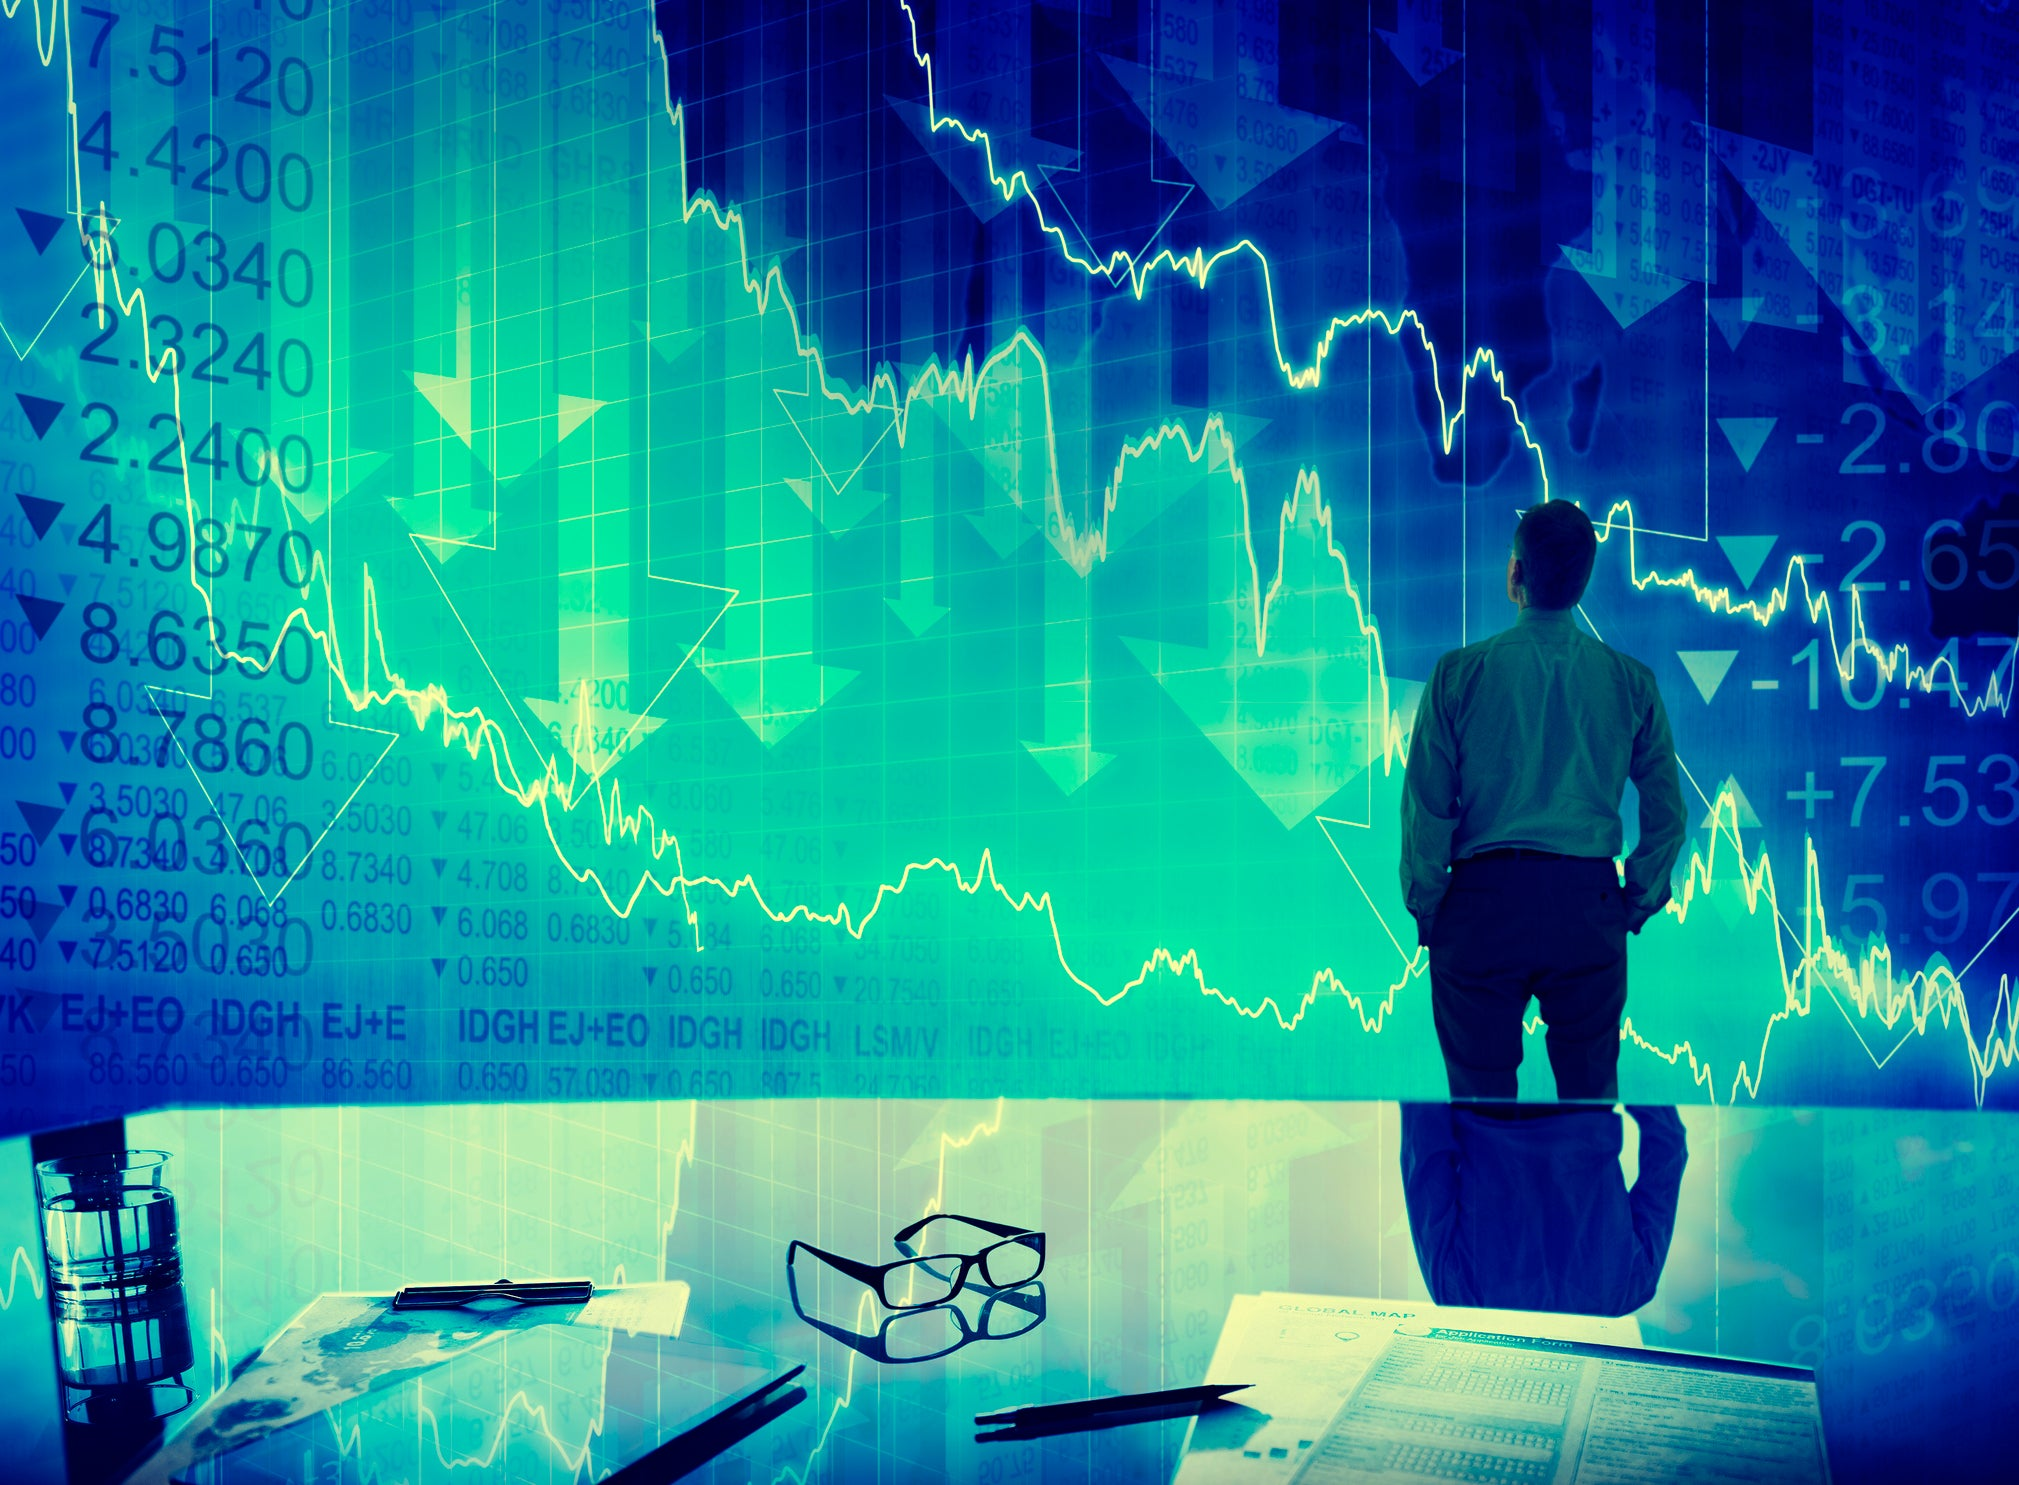 Why You Probably Won't Buy Stocks in the Next Market Crash Either | The Motley Fool